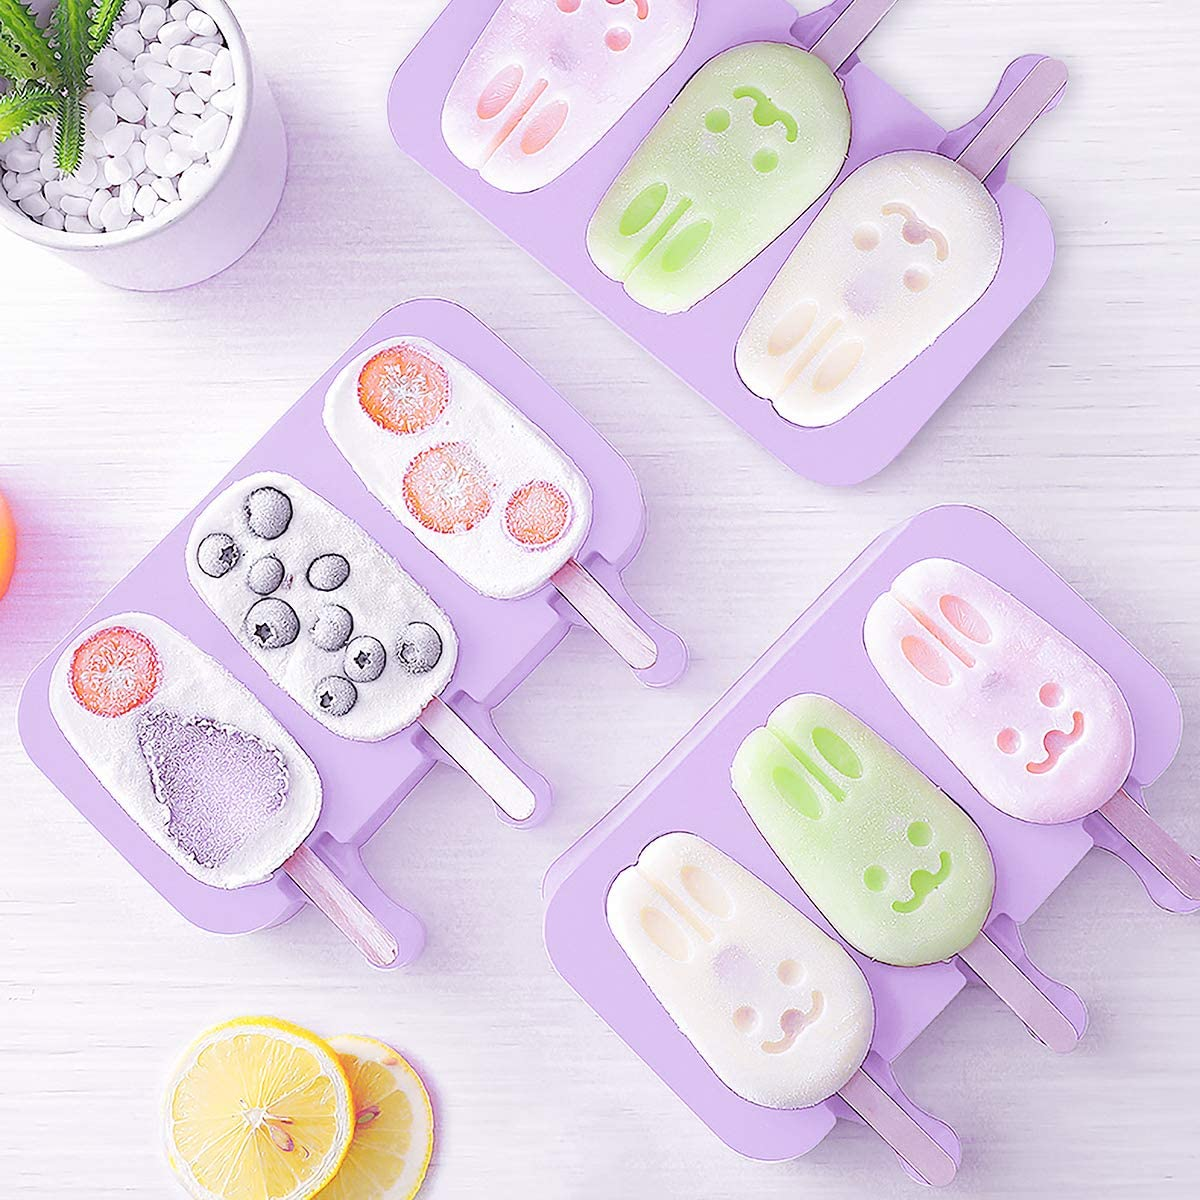 DIY Homemade Cartoon Ice Cream Cute Popsicle Ice Lolly Maker Food Grade Silicone Ice Cream Mold For Home Kitchen Accessories